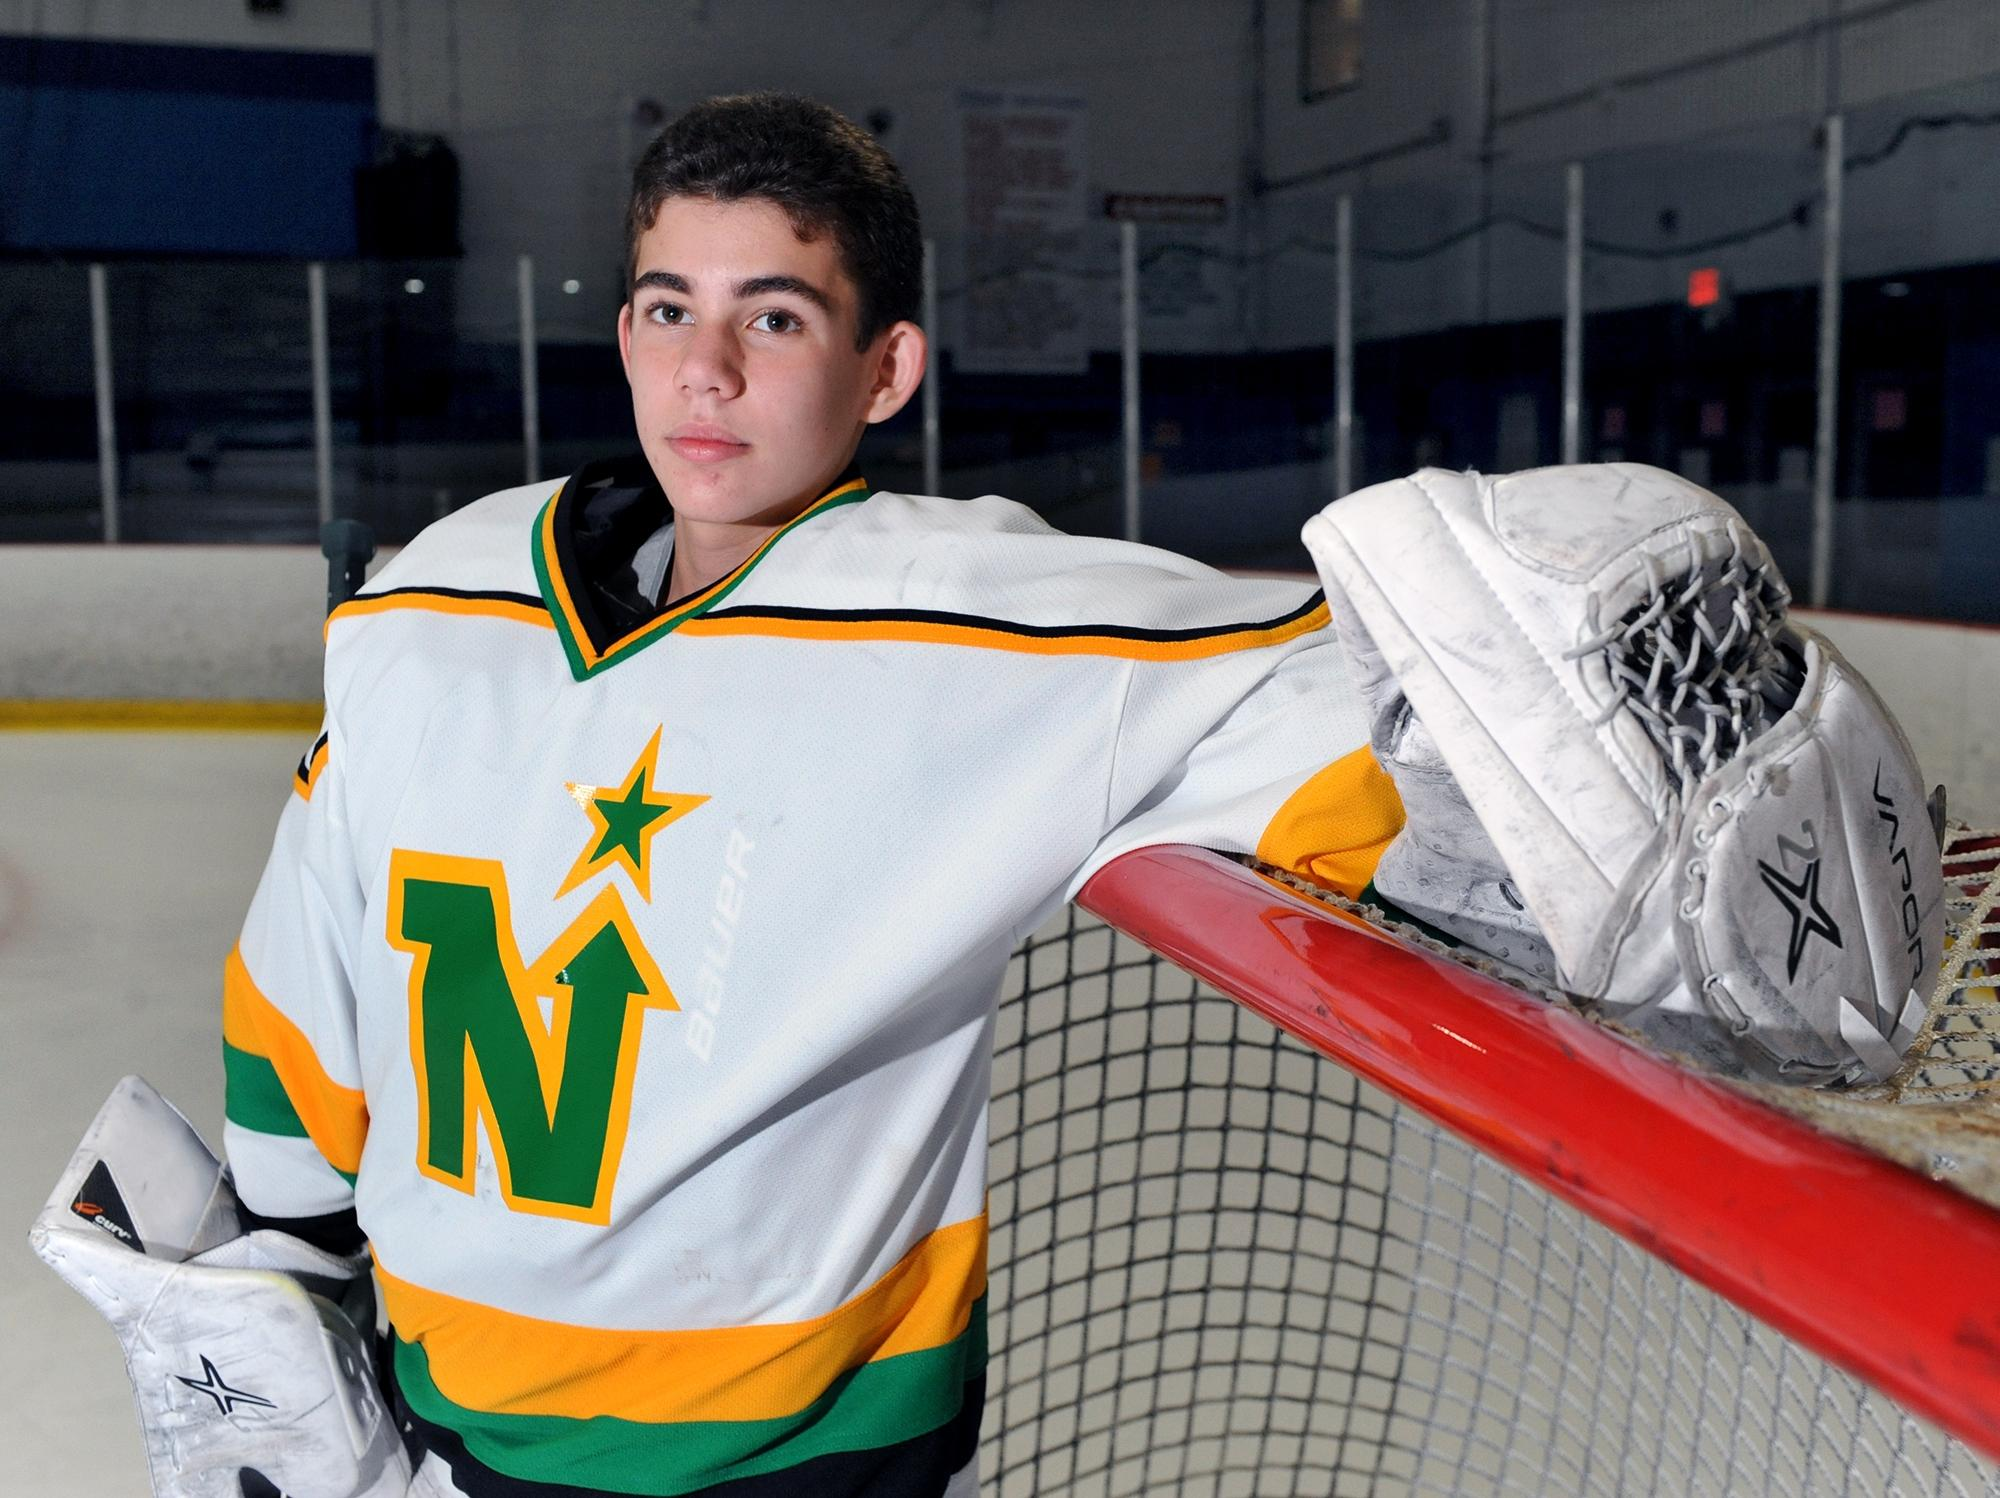 'Ando Saves:' Sudbury's Jesse Rich raises money by making stops as a hockey goalie to help children of late Lincoln-Sudbury athletic trainer – Sports – Milford Daily News